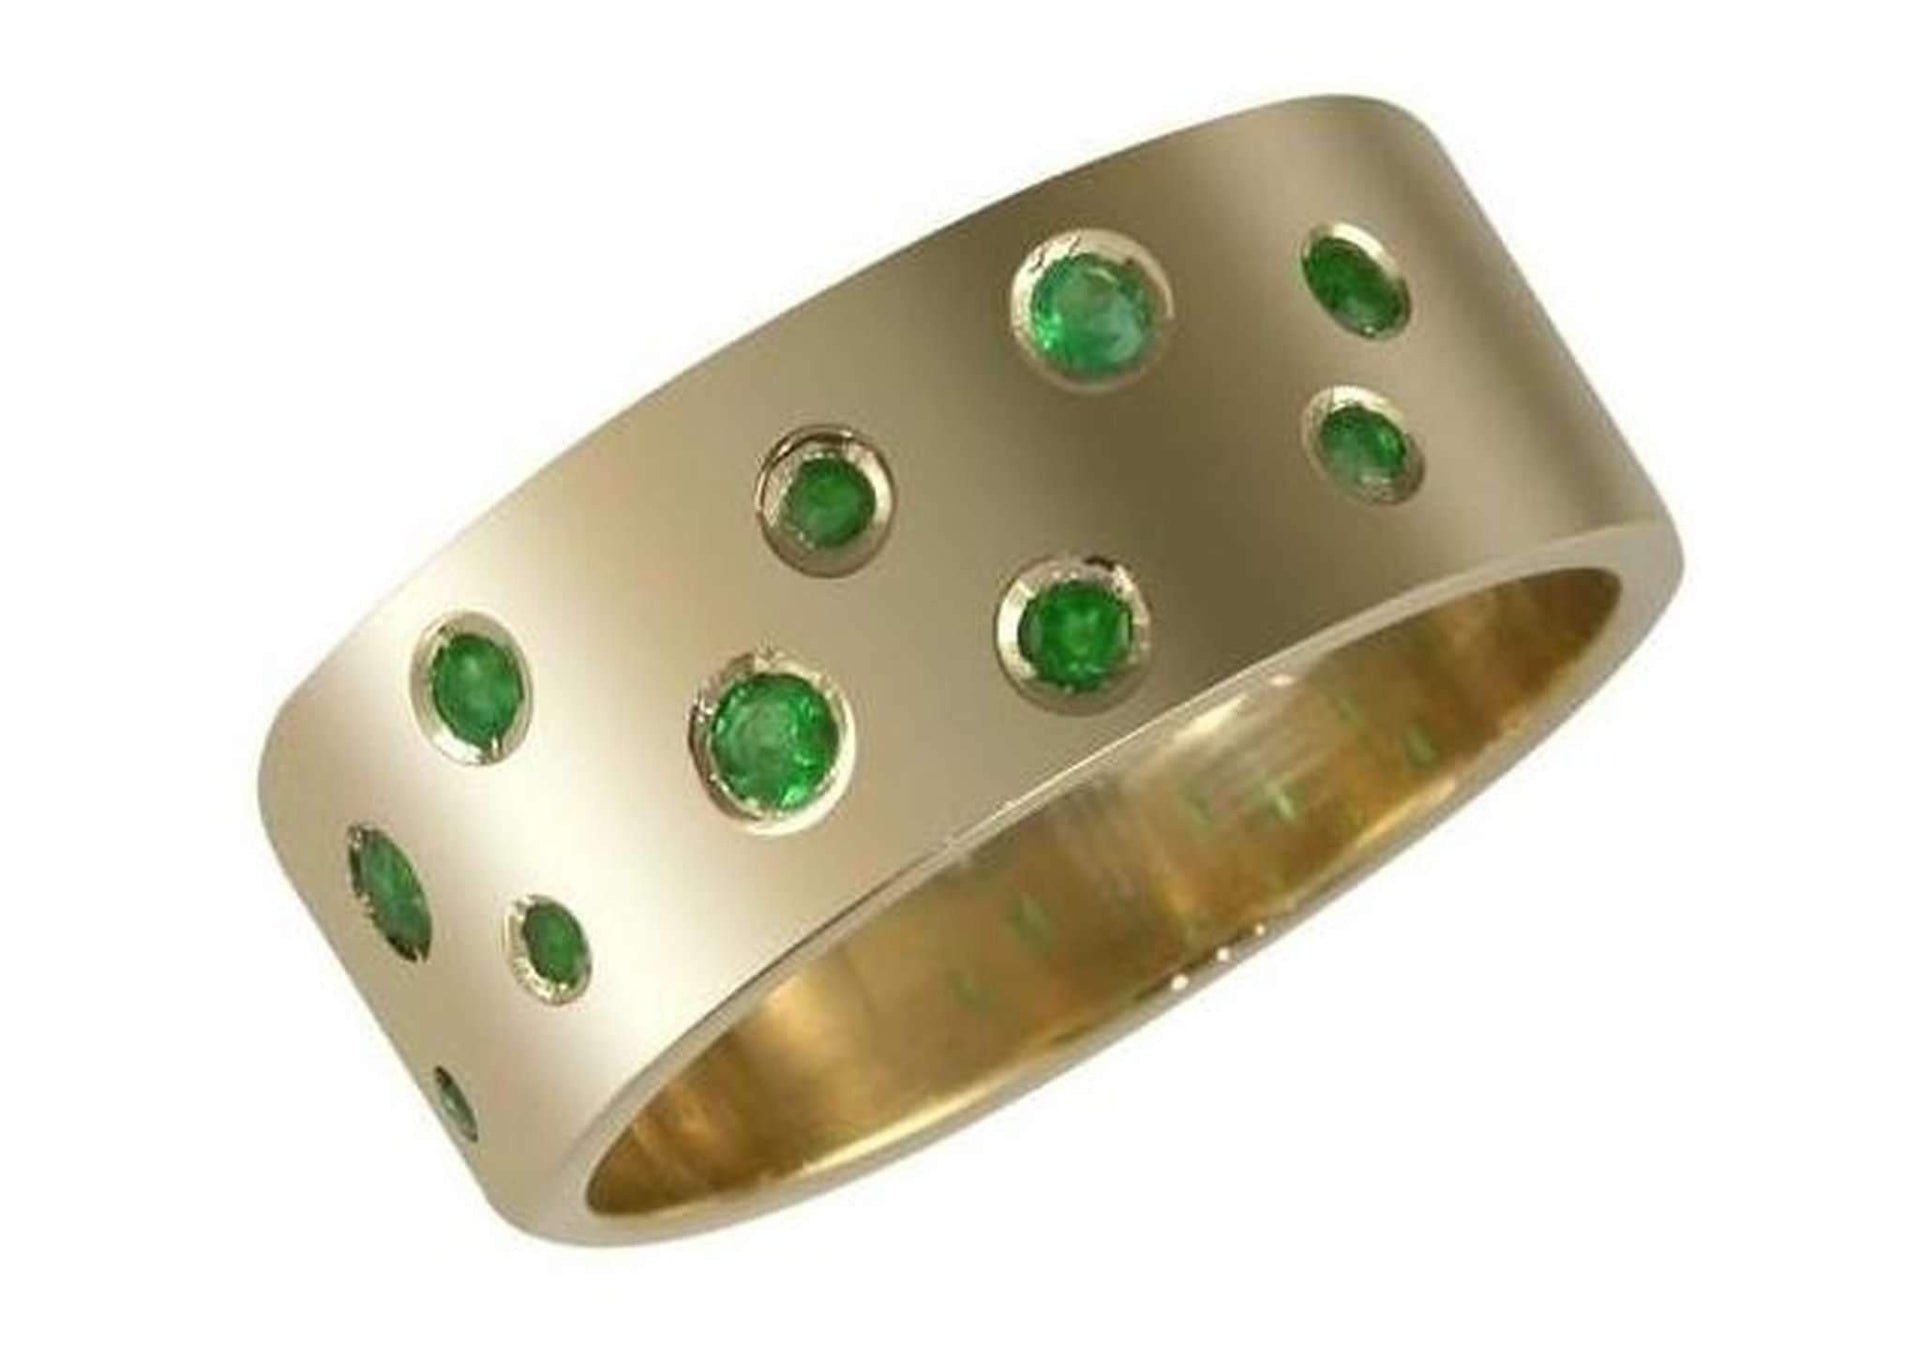 9ct Gold and Biron Emerald Ring   - Jens Hansen